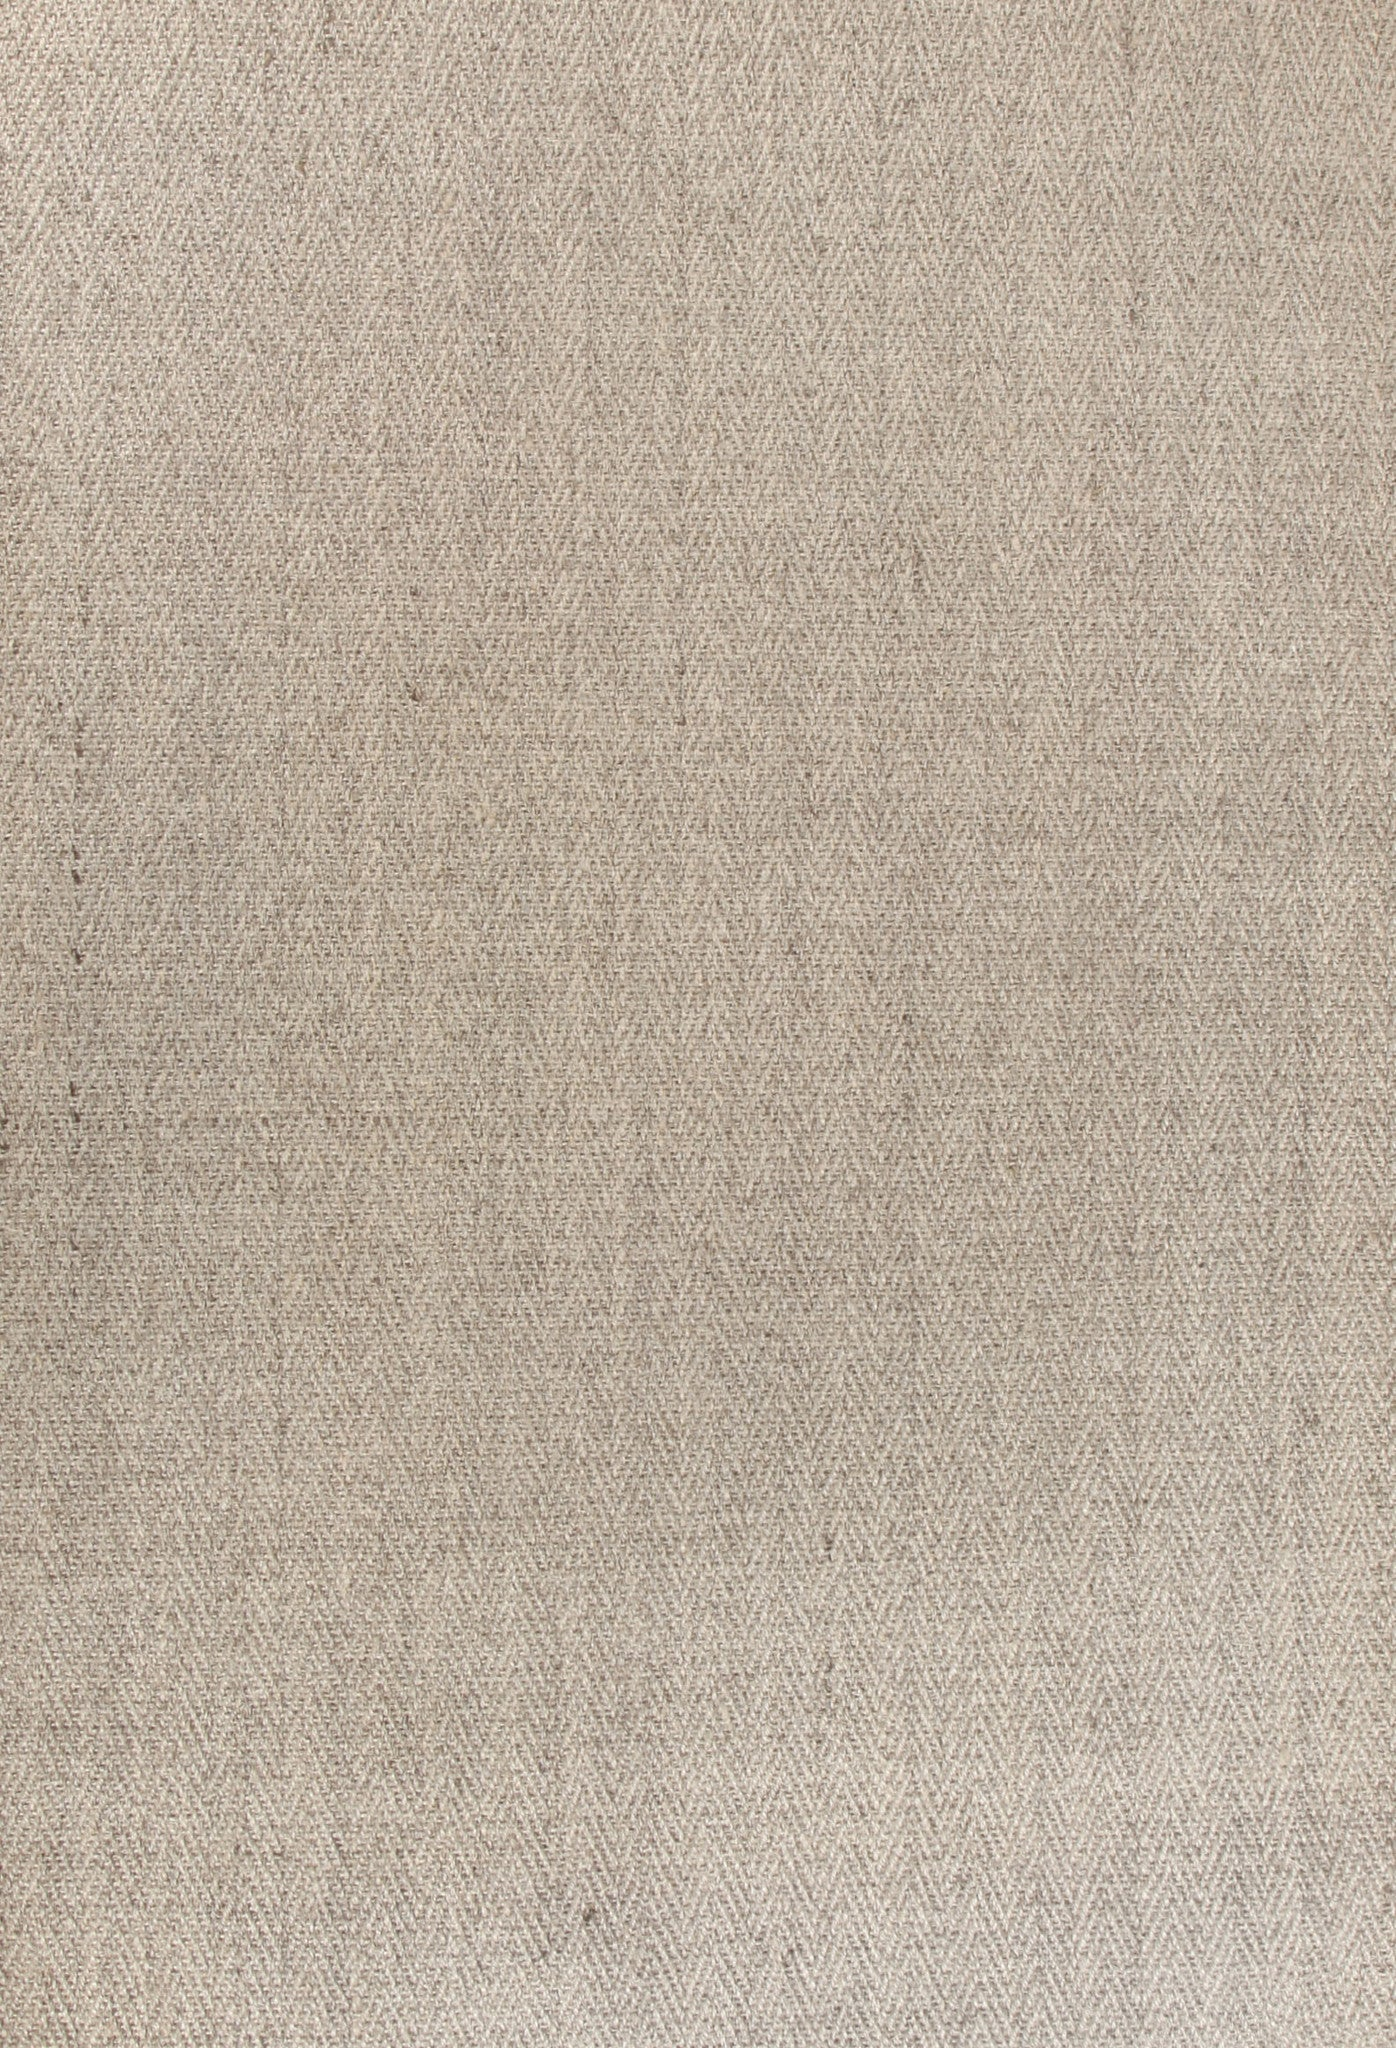 Natural Sisal Rug Herring Bone Marble